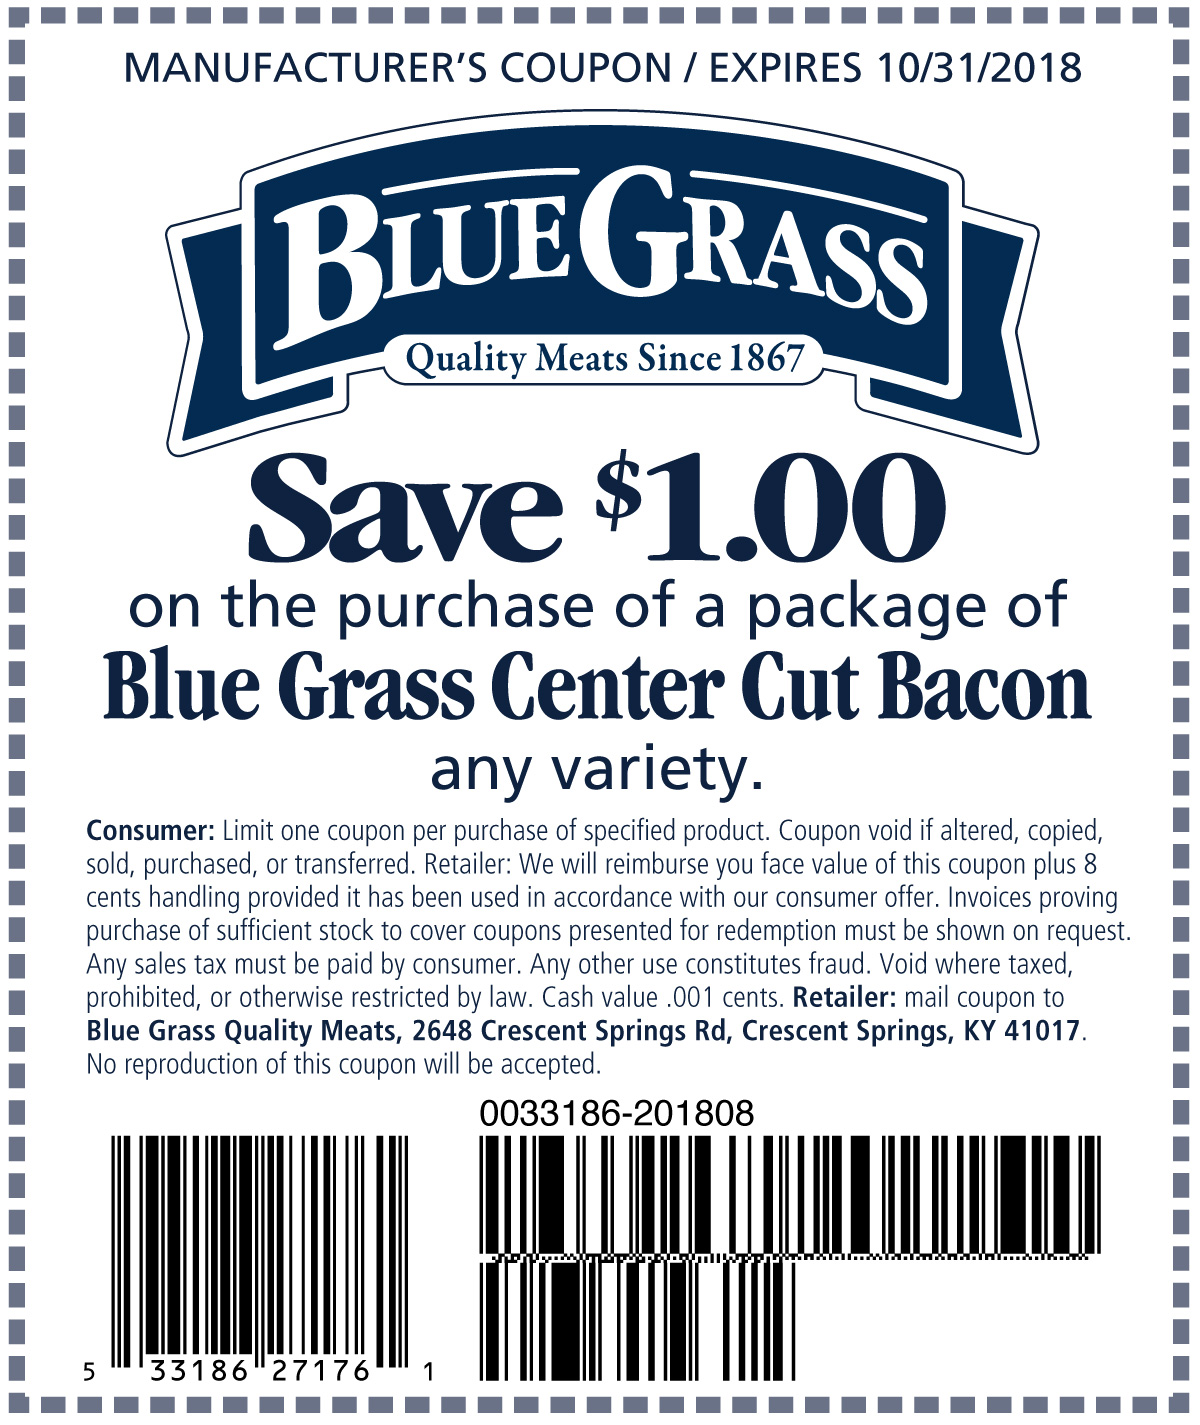 Save $1.00 on the purchase of Blue Grass Center Cut Bacon